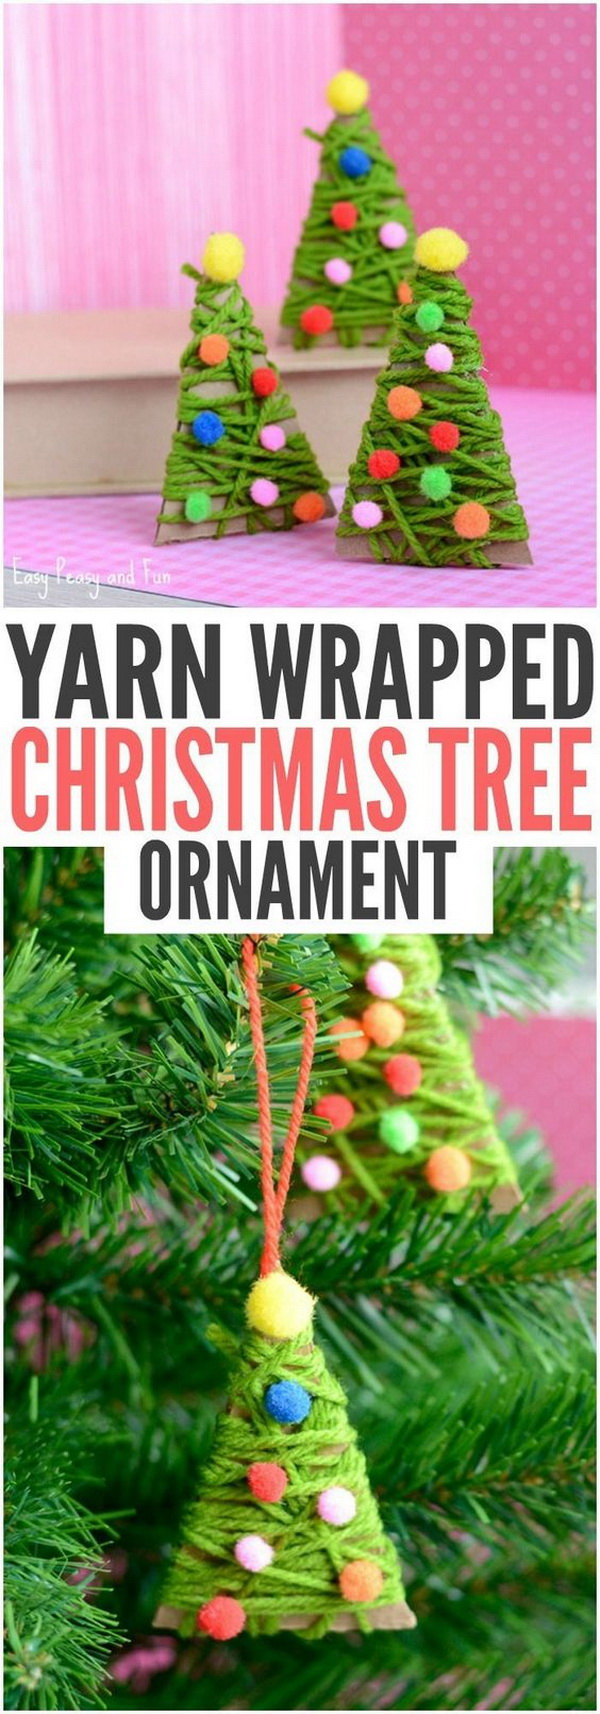 45 Personalized Diy Christmas Ornament Ideas For